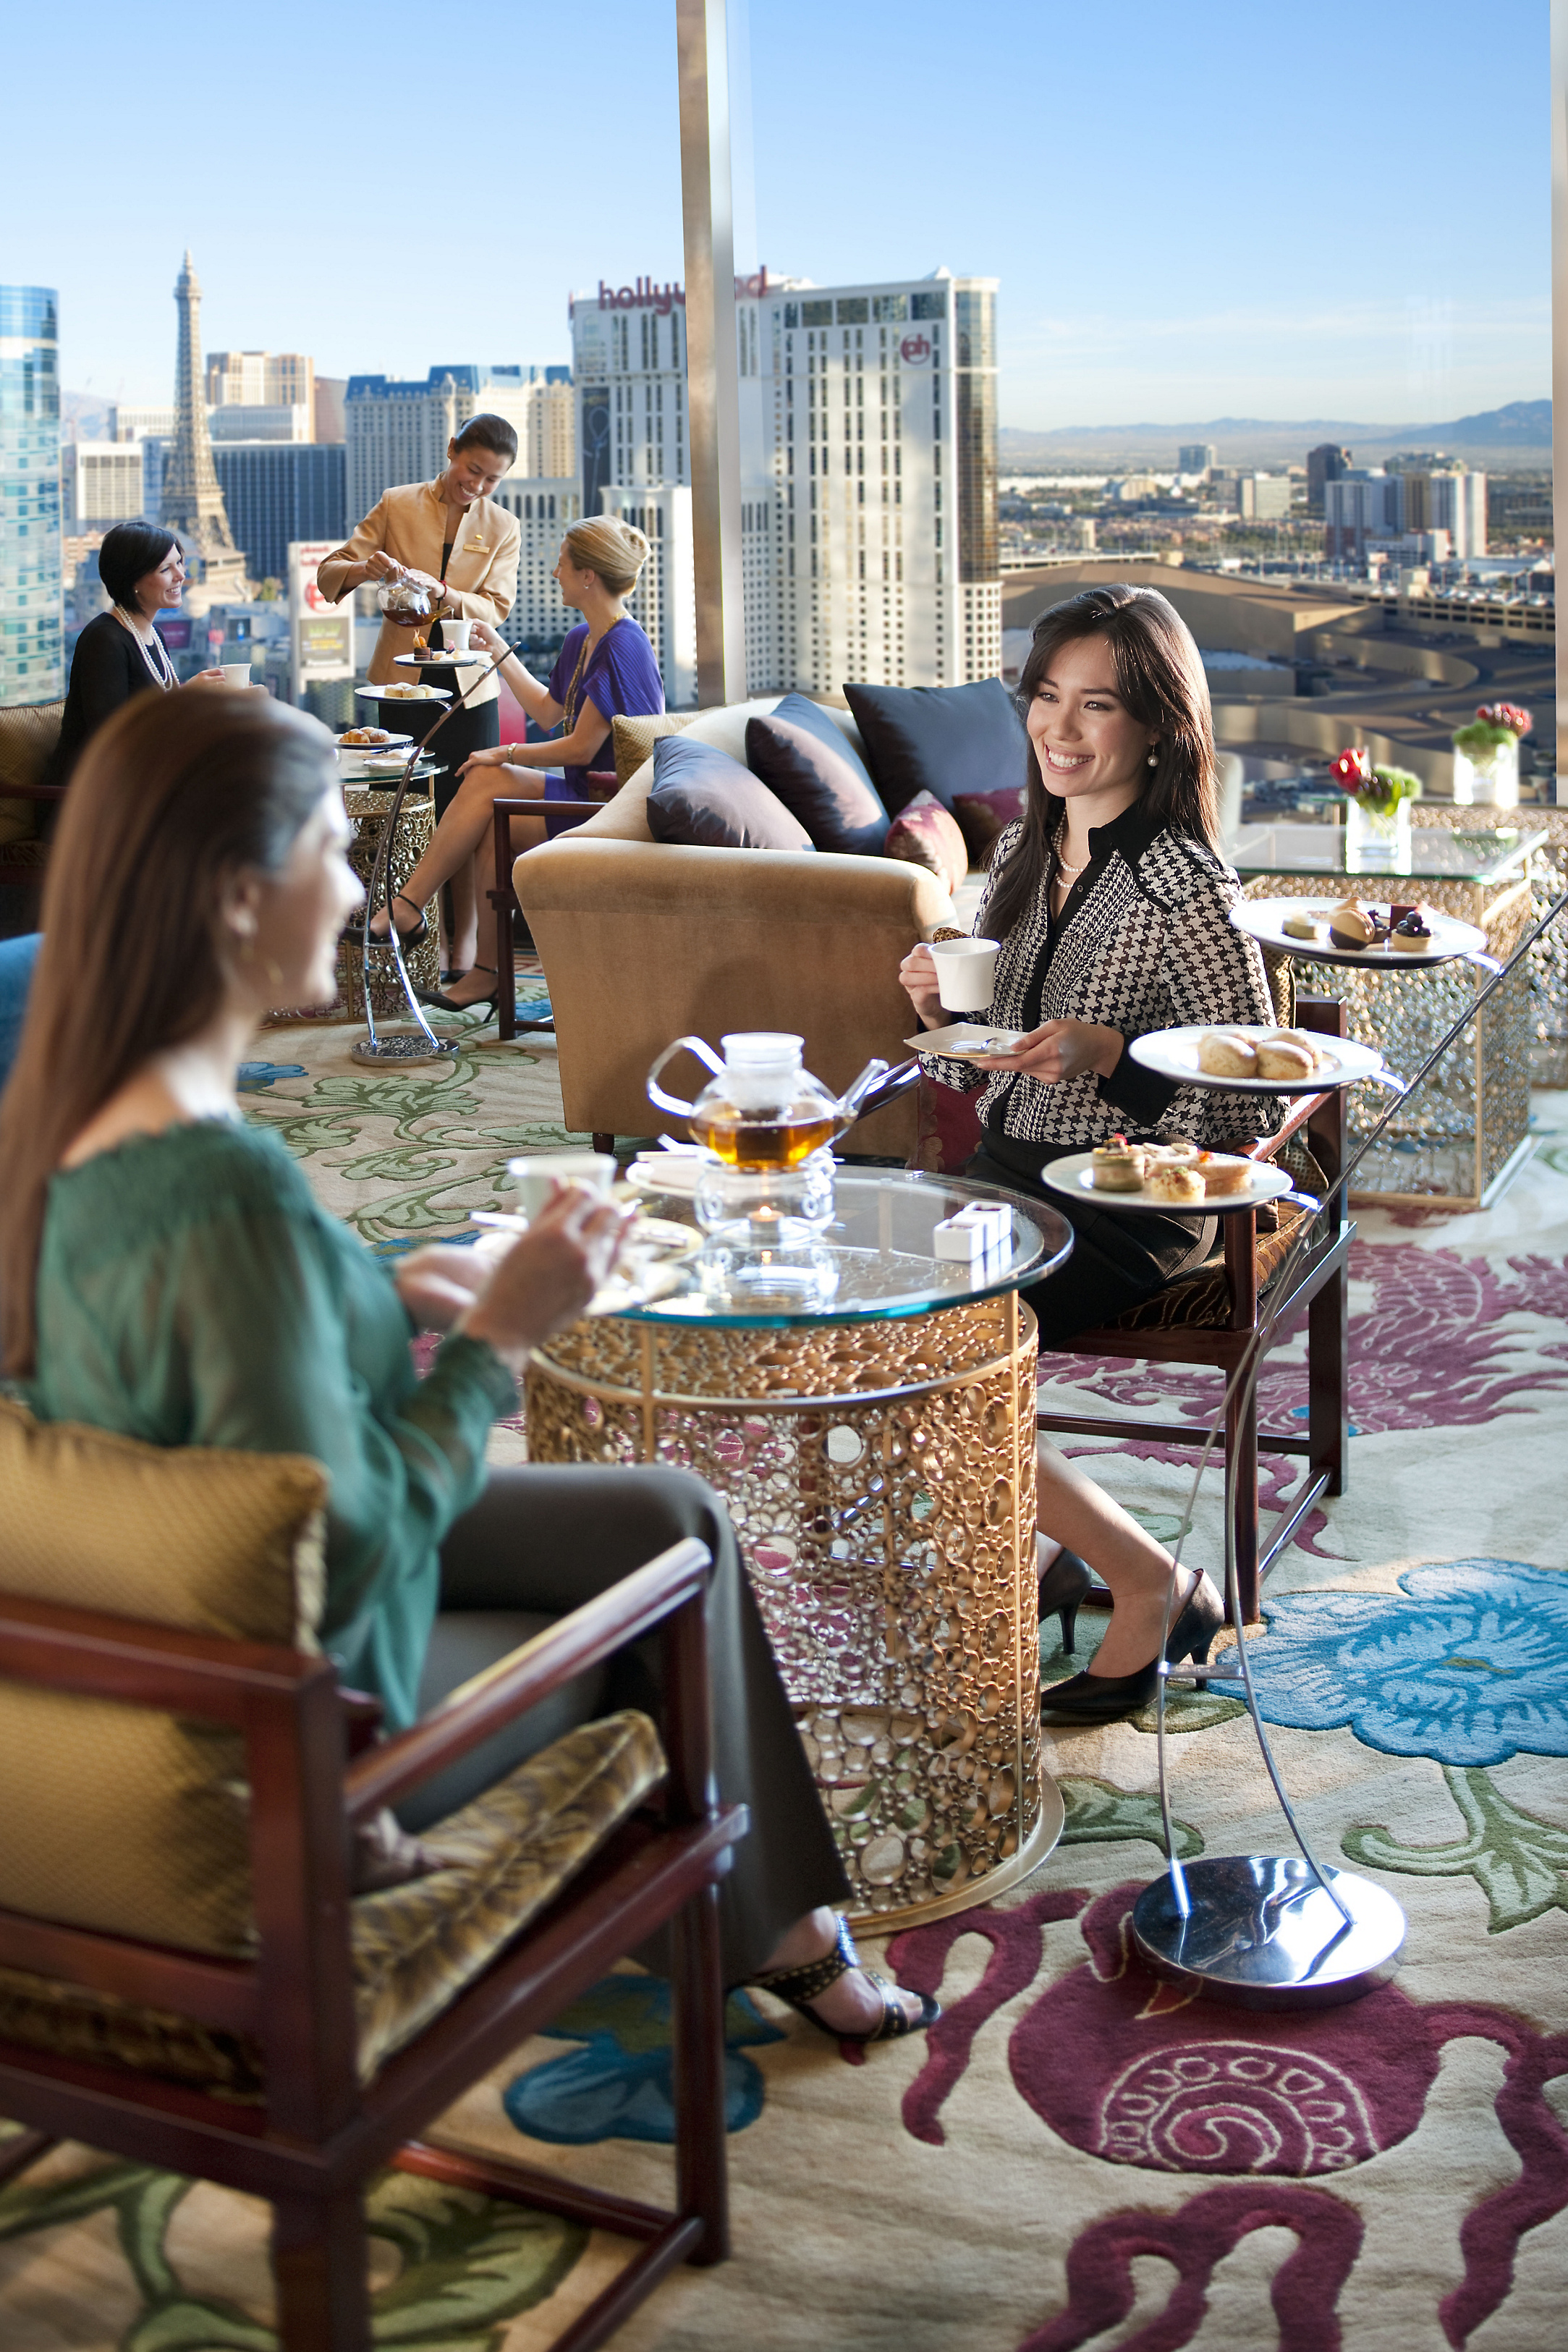 las-vegas-restaurant-tearoom-high-tea-1